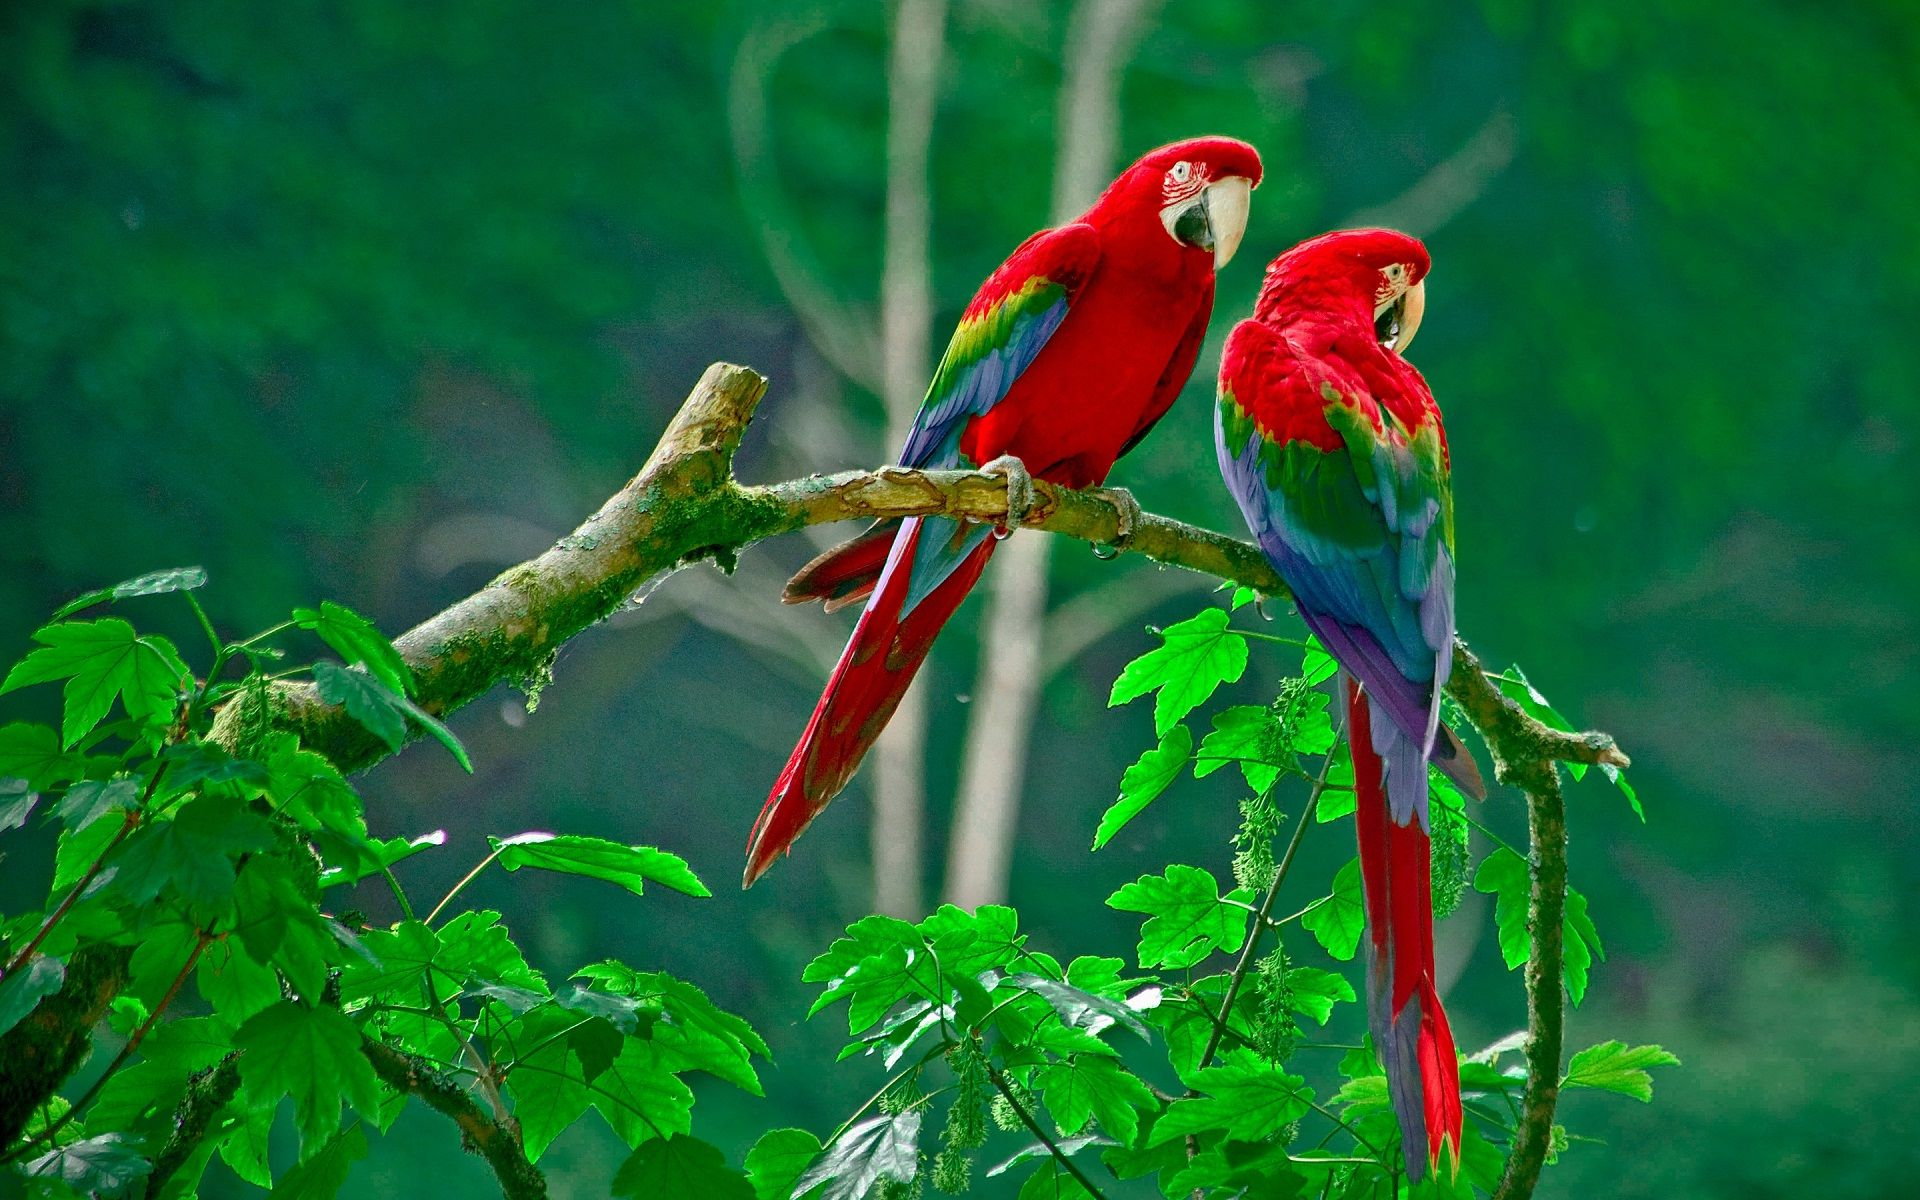 Image Result For Beautiful Love Pic Parrot Wallpaper Birds Wallpaper Hd Parrot Image